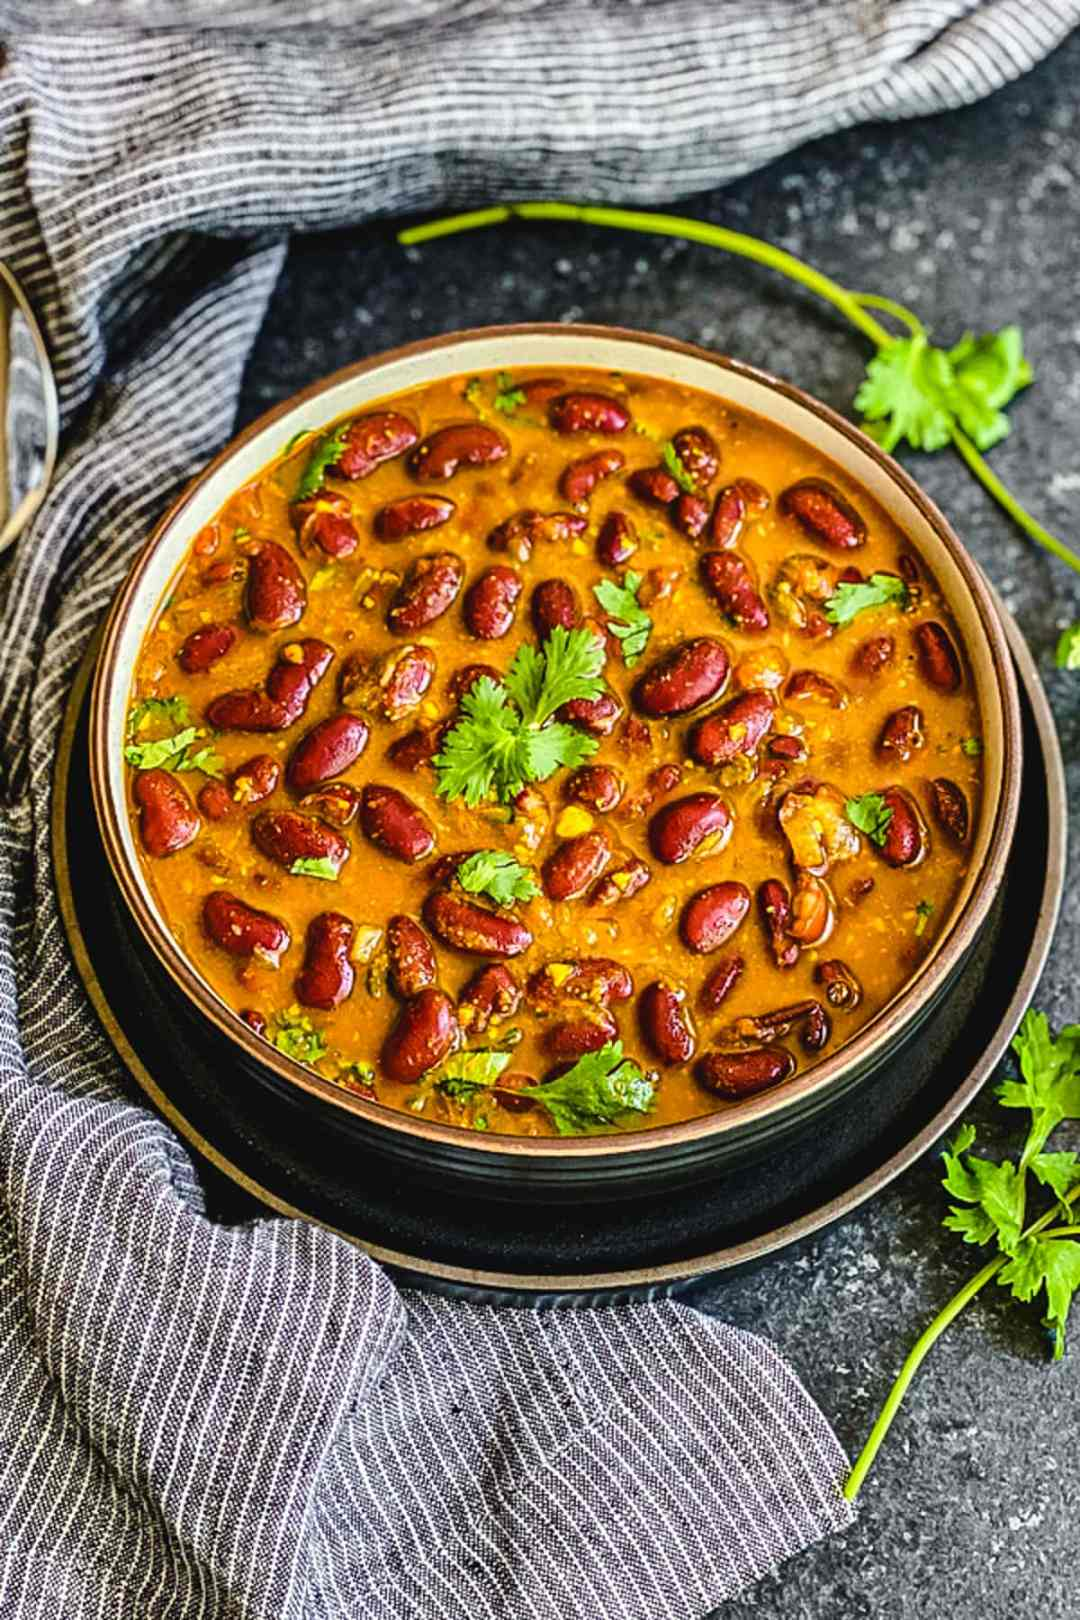 Rajma masala garnished with green chillies and cilantro